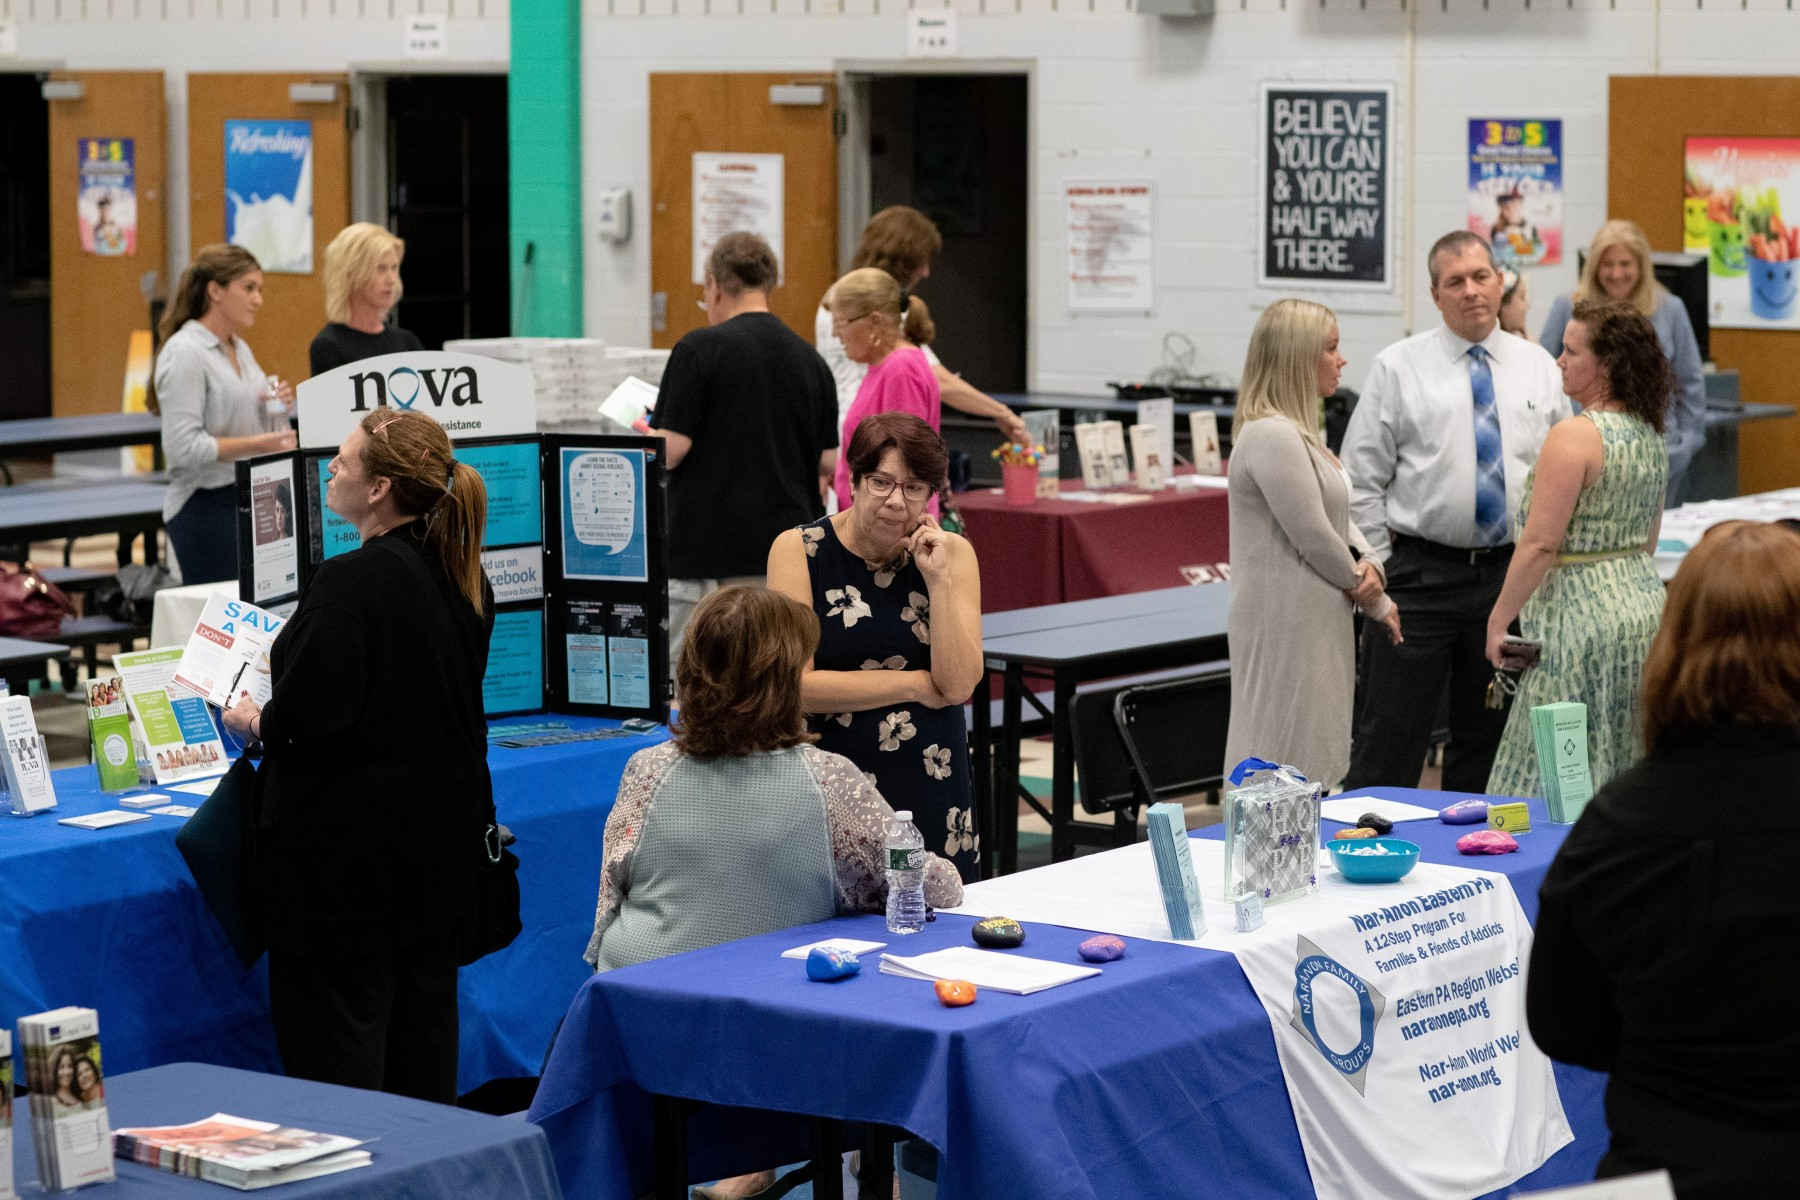 September 16, 2019: During National Recovery Month, state Senator Steve Santarsiero (D-10) hosted an Addiction Prevention and Recovery Open House at William Penn Middle School in Yardley.